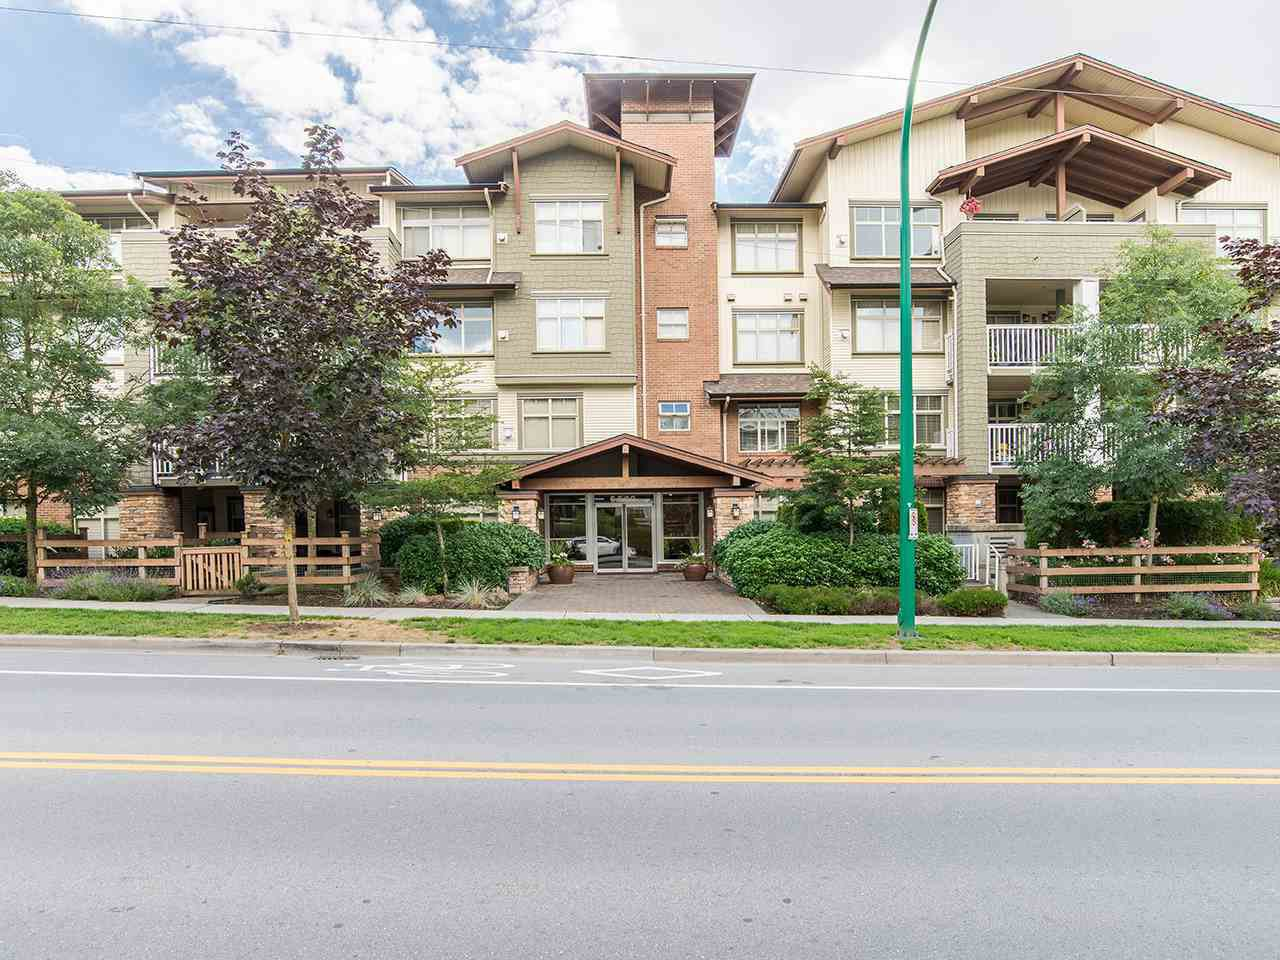 """Main Photo: 203 6500 194 Street in Surrey: Clayton Condo for sale in """"SUNSET GROVE"""" (Cloverdale)  : MLS®# R2190673"""